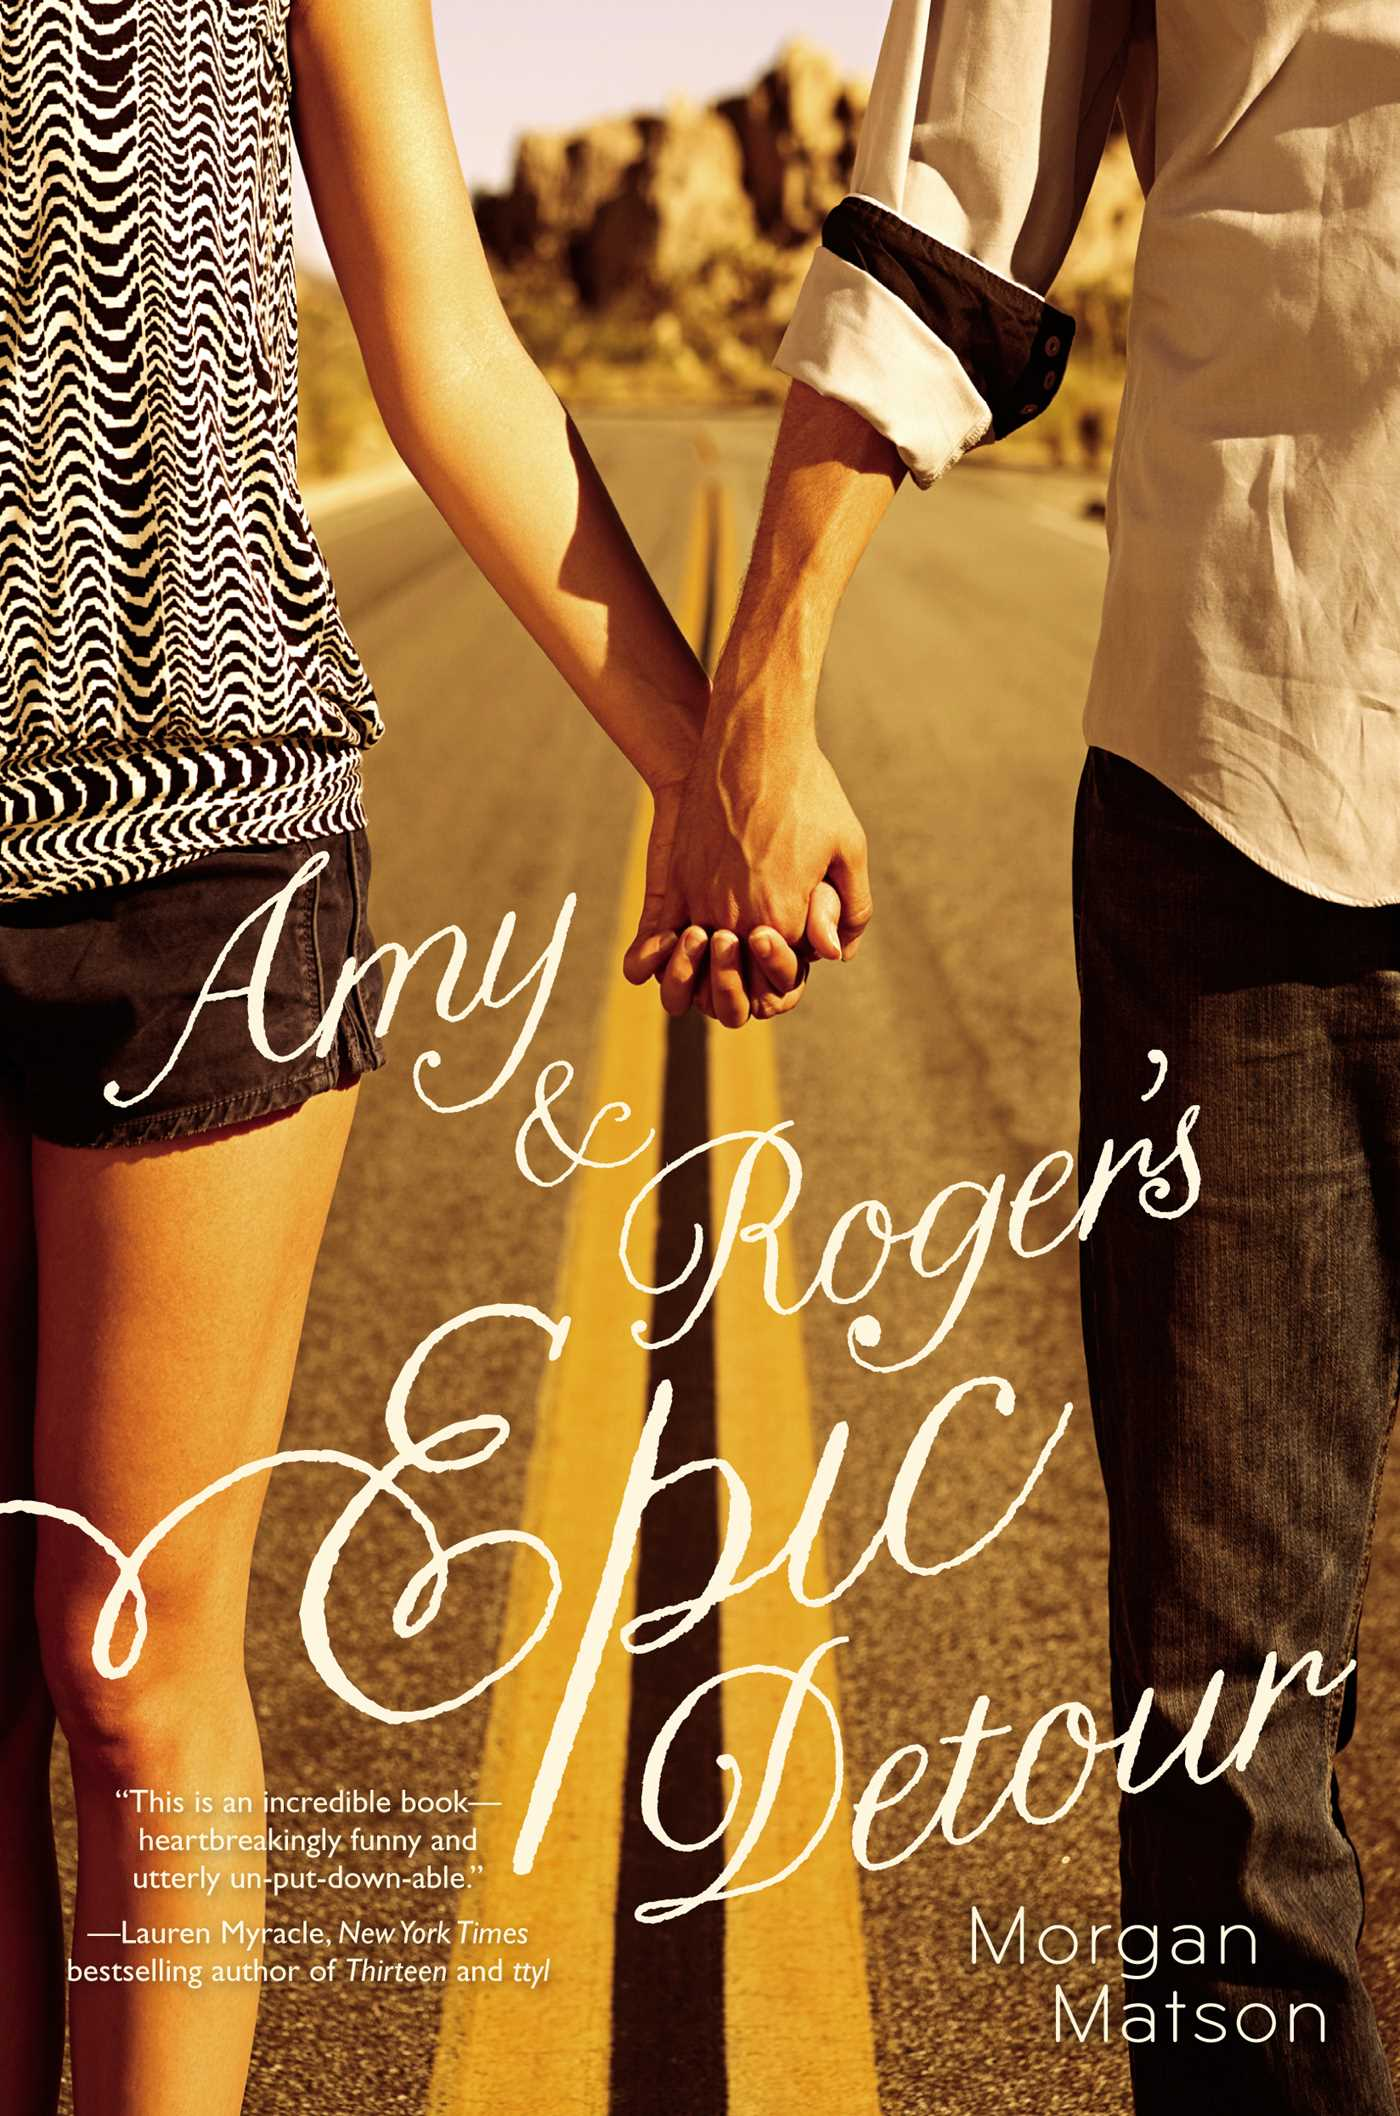 Amy-rogers-epic-detour-9781439157497_hr